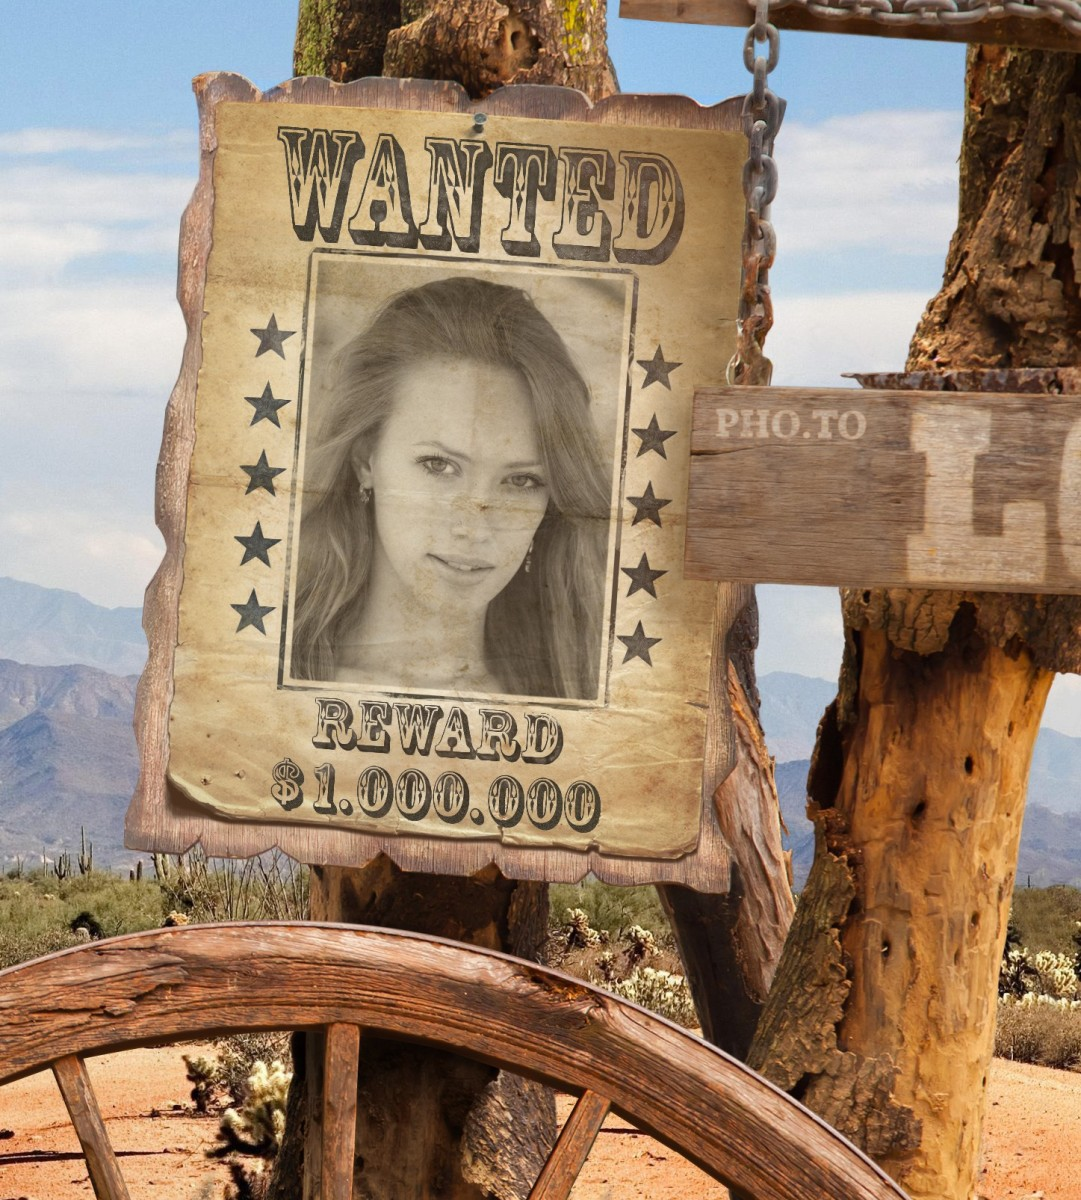 create your own wanted poster with wanted poster generator. Black Bedroom Furniture Sets. Home Design Ideas